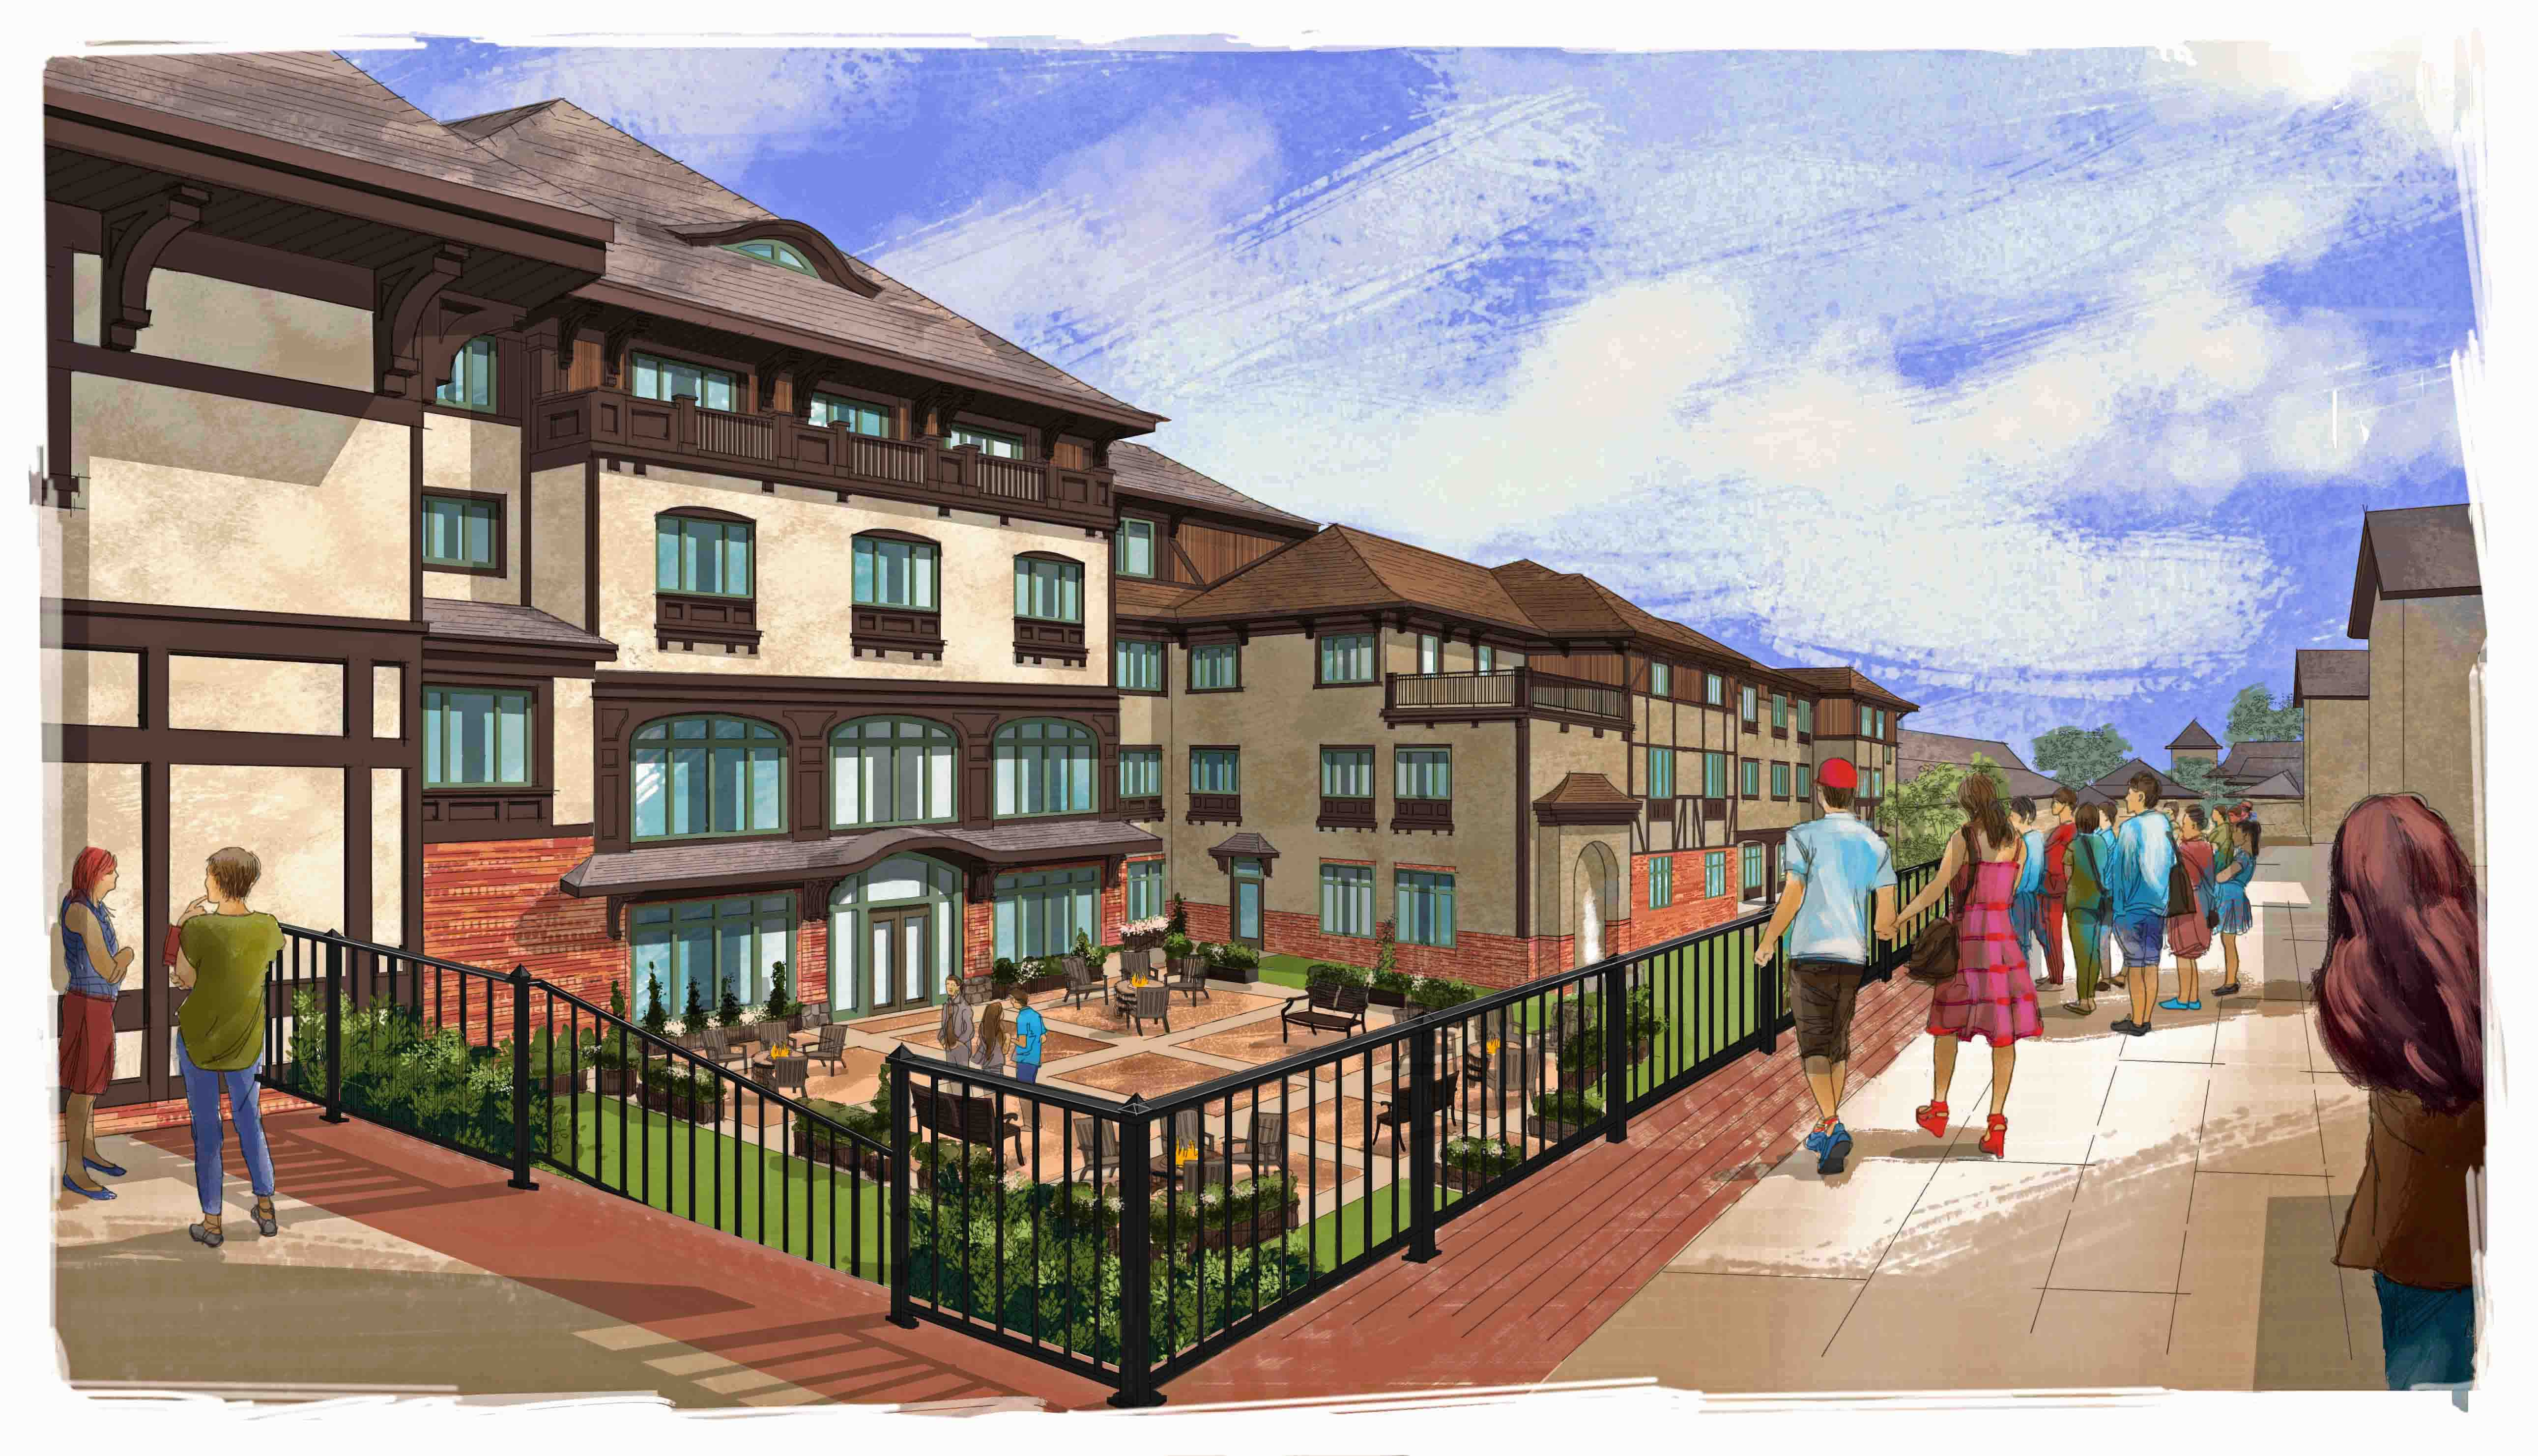 Biltmore Estate confirms construction of second hotel, set to open November 2015